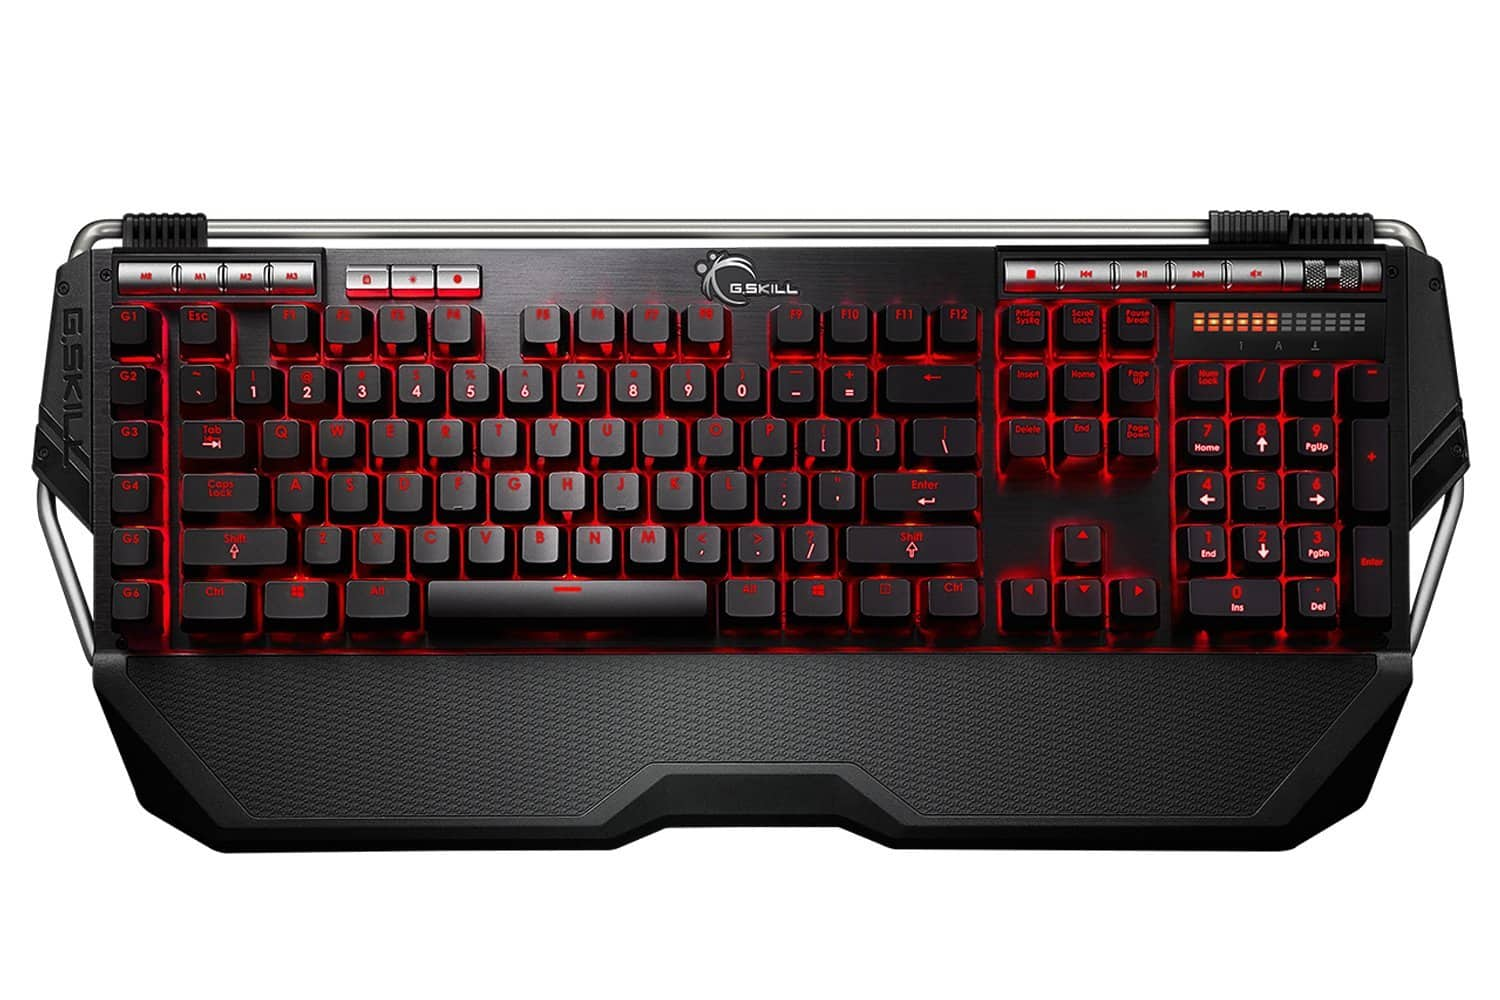 G.SKILL RIPJAWS KM780R MX Mechanical Gaming Keyboard, Cherry MX Red - $59.99 + FS AC